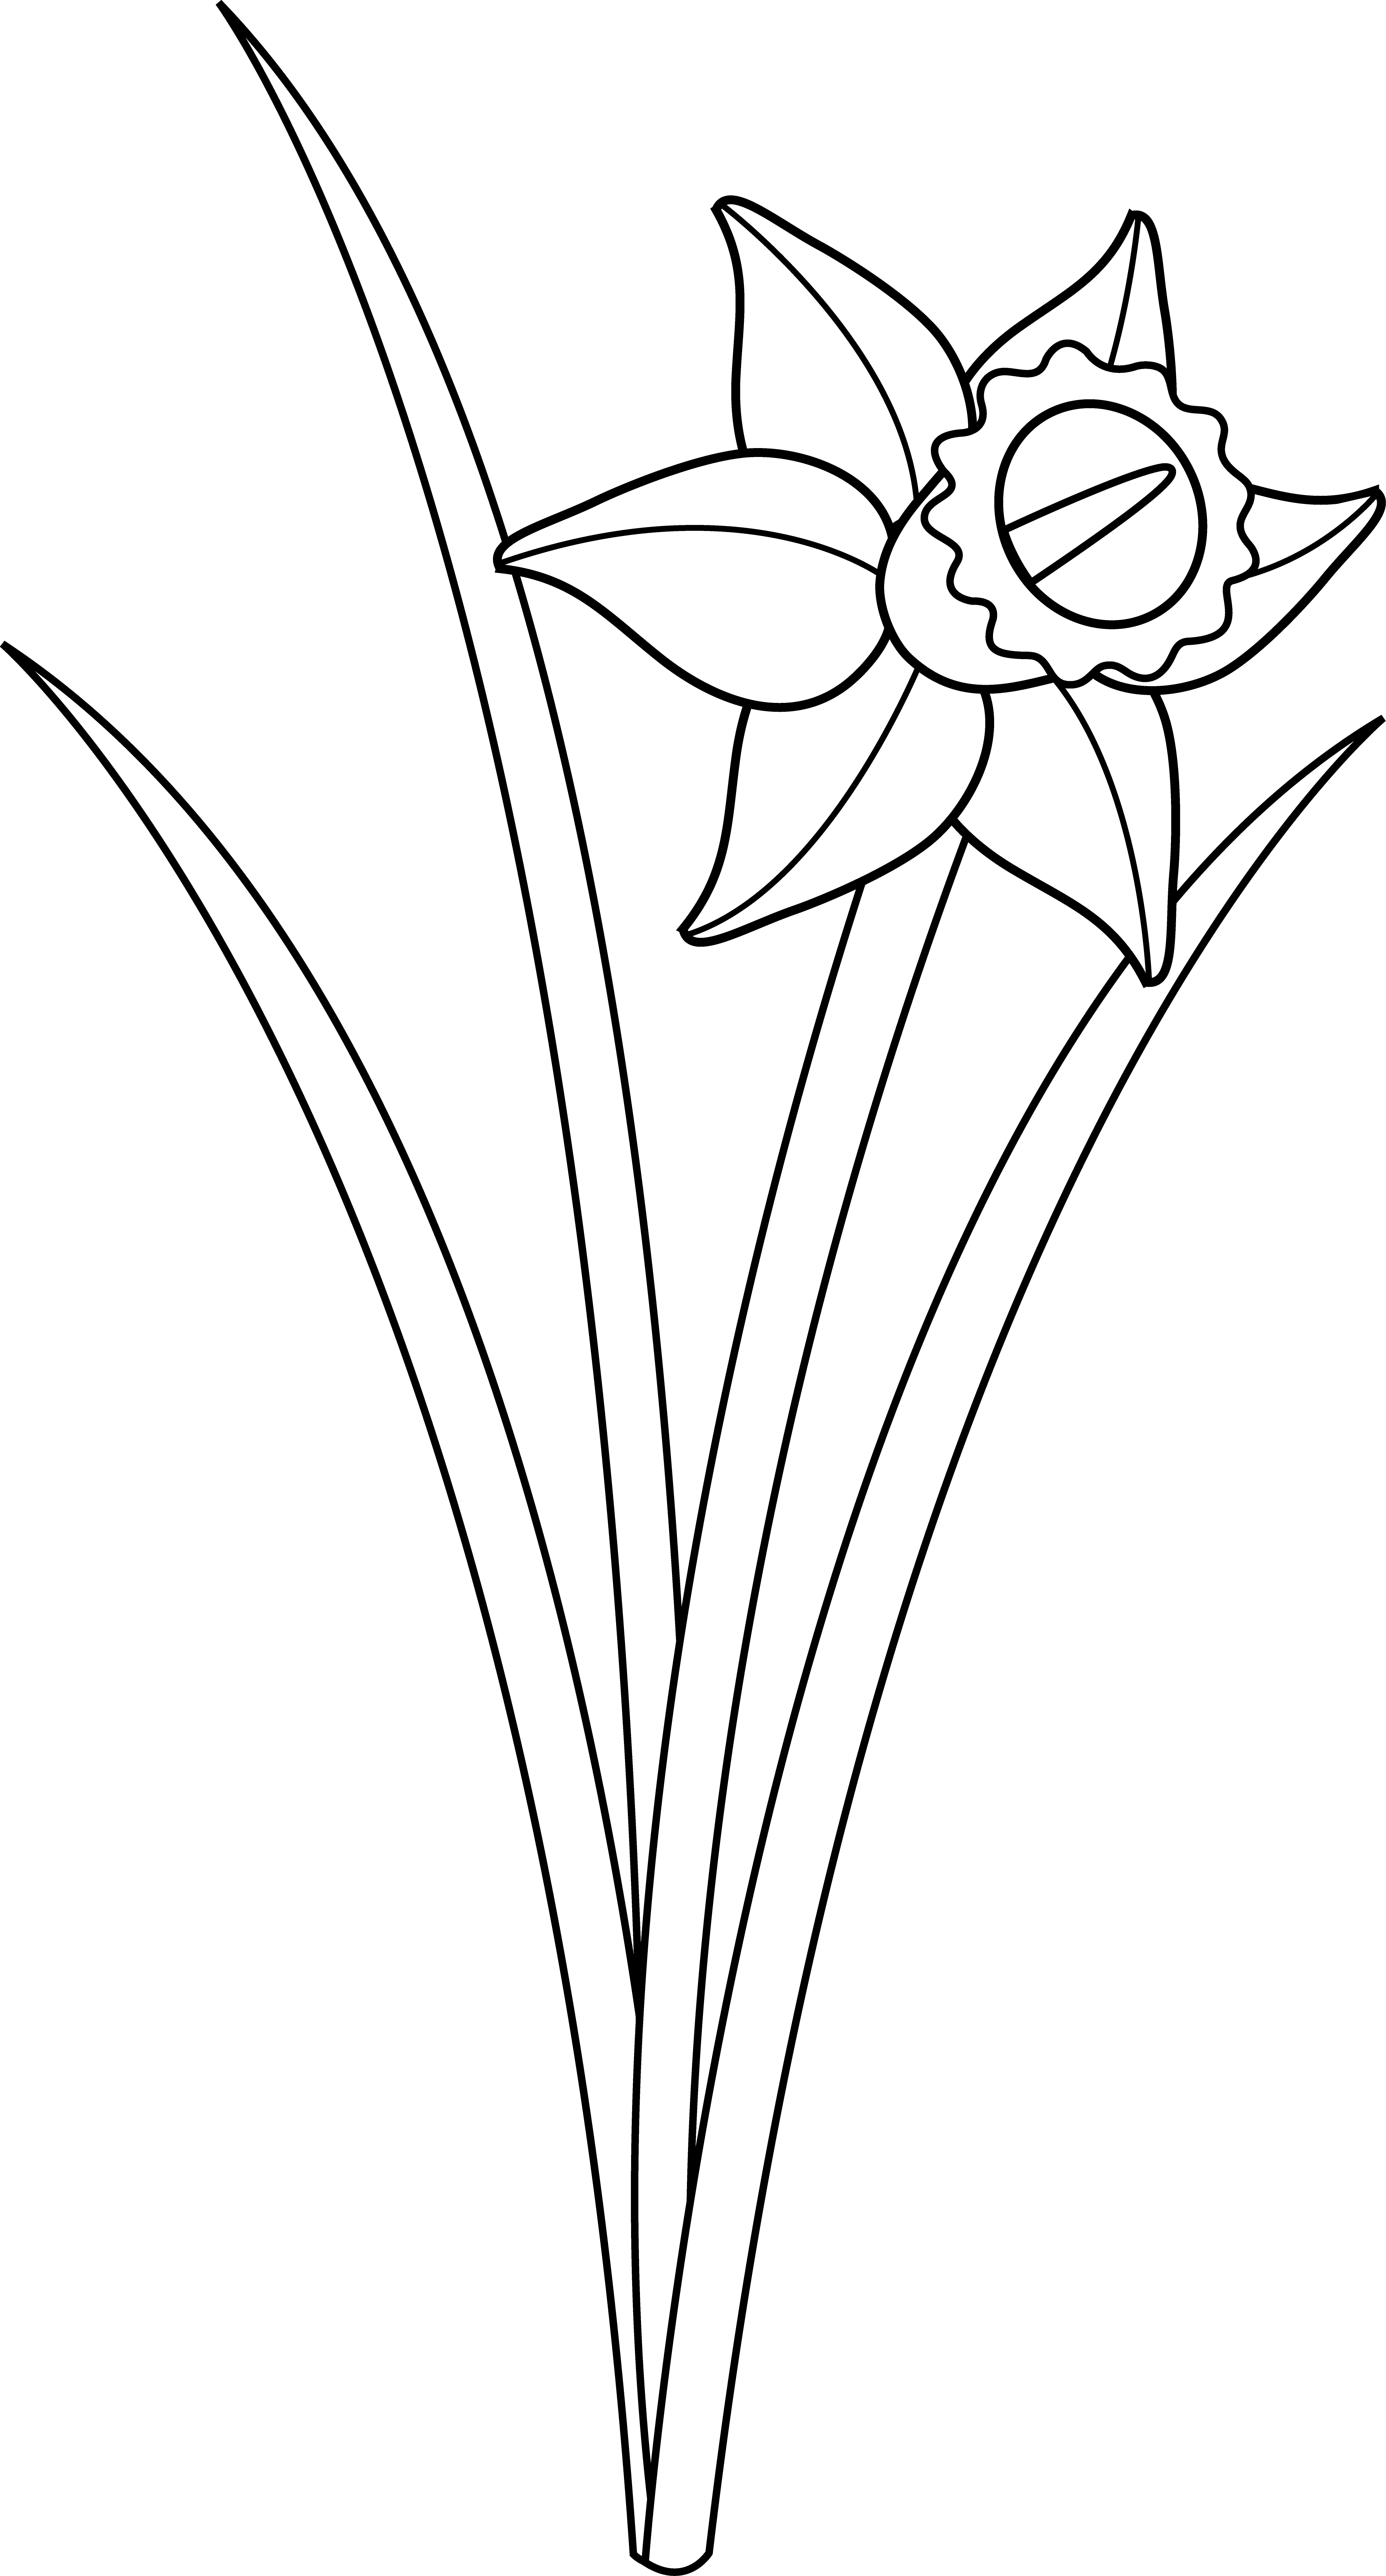 Free flower outline clipart svg freeuse eletragesi: Daffodil Clipart Black And White Images svg freeuse